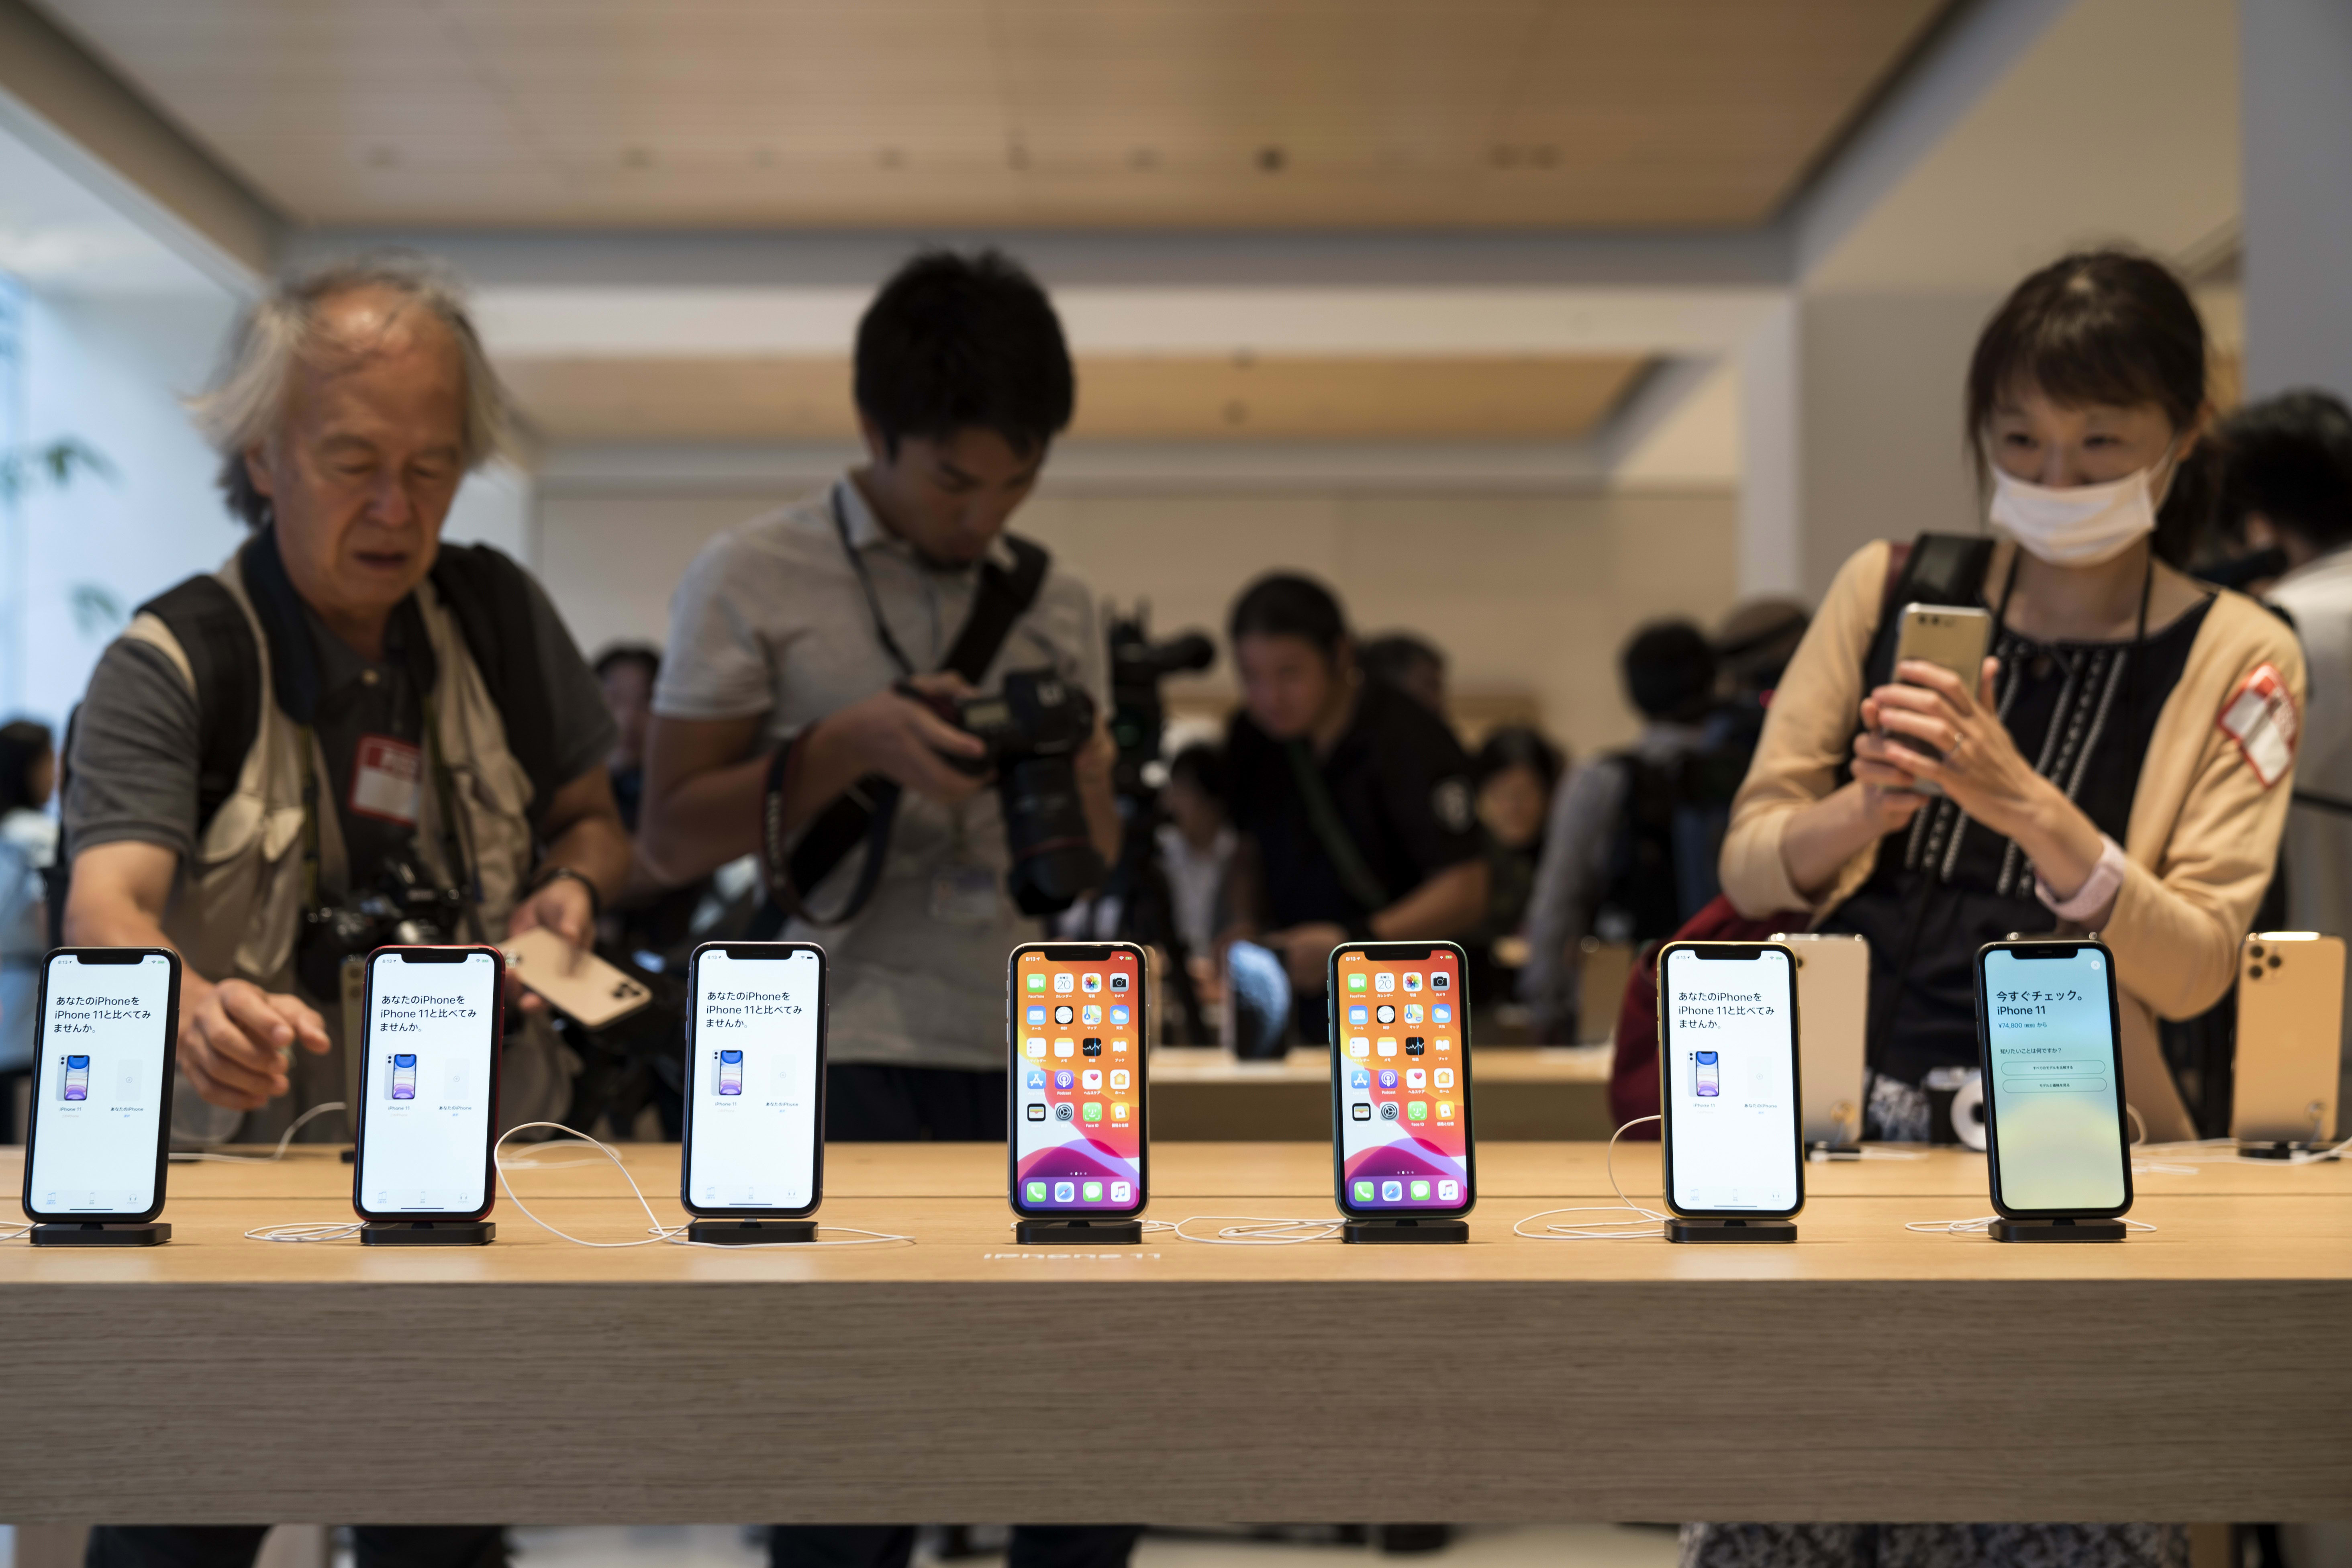 Apple customers hold out for 5G despite lower prices on iPhone: Survey